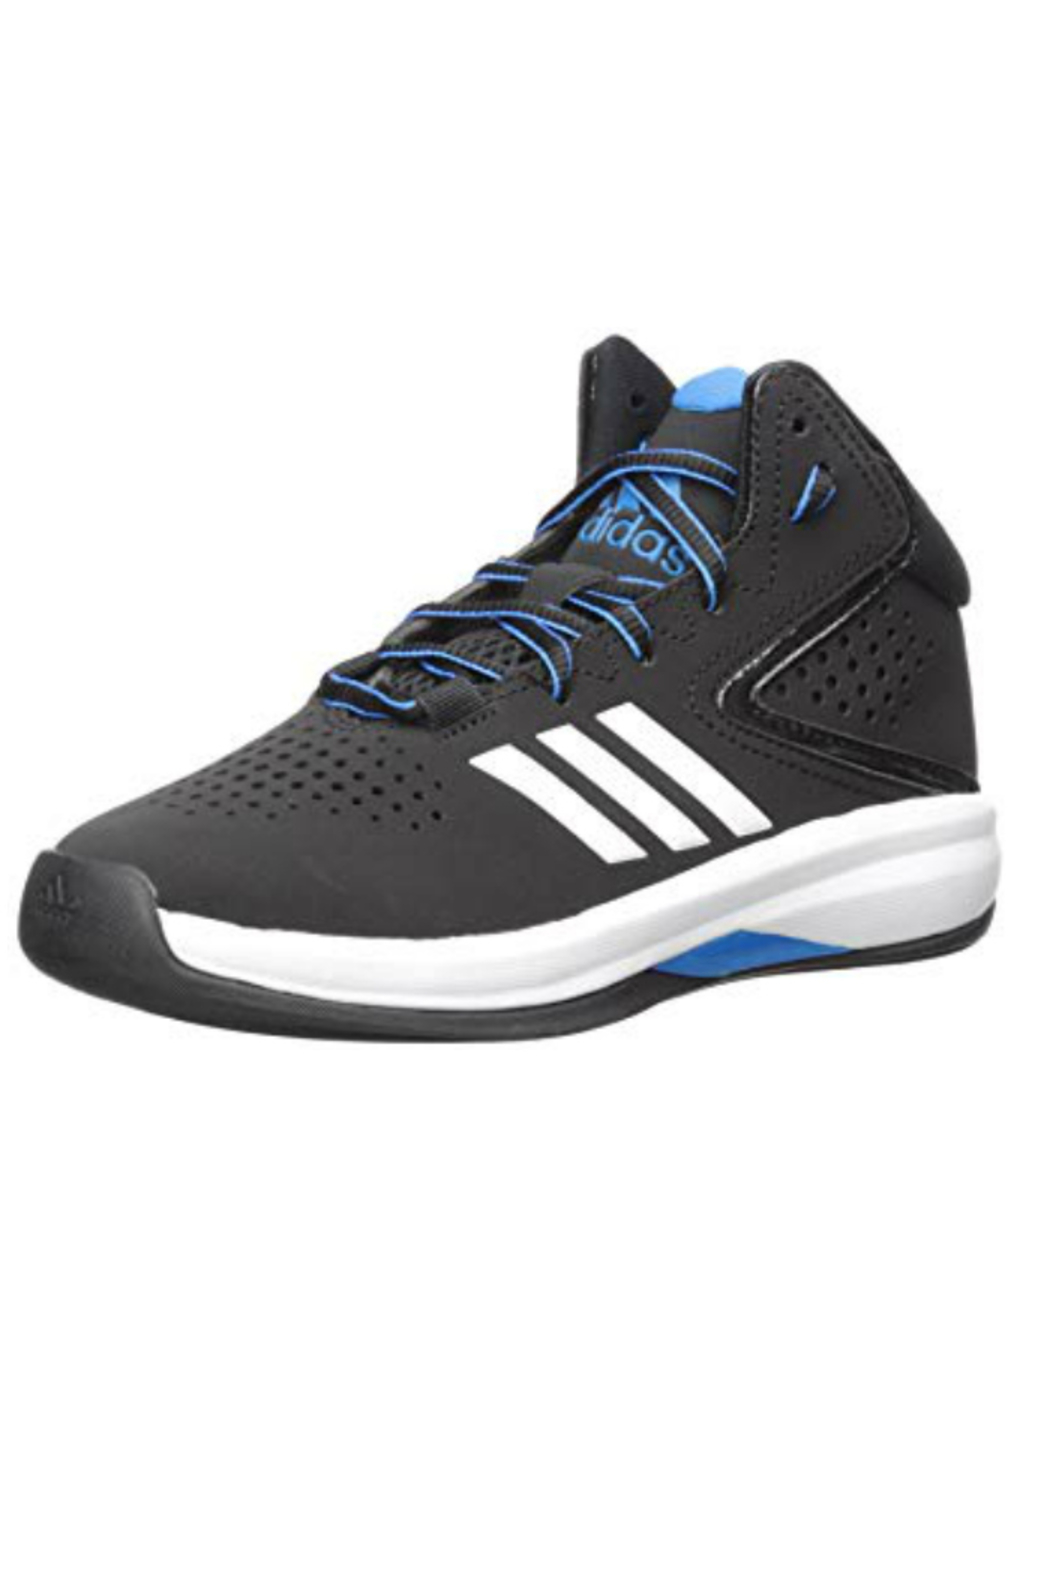 adidas ADIDAS CROSS EM UP - Front Cropped Image